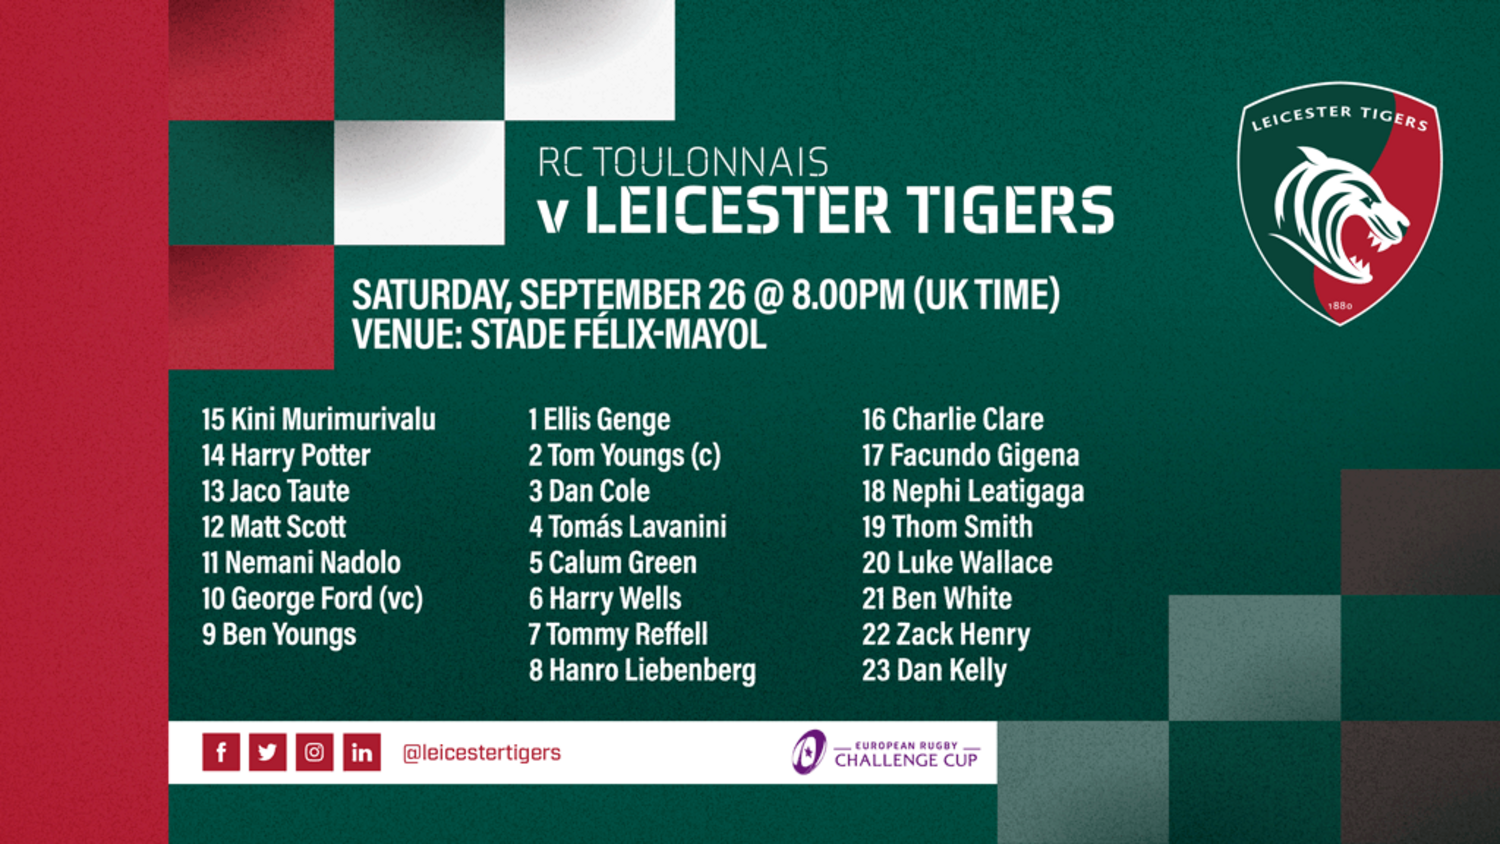 matchday live toulon v tigers 260920 team news.png